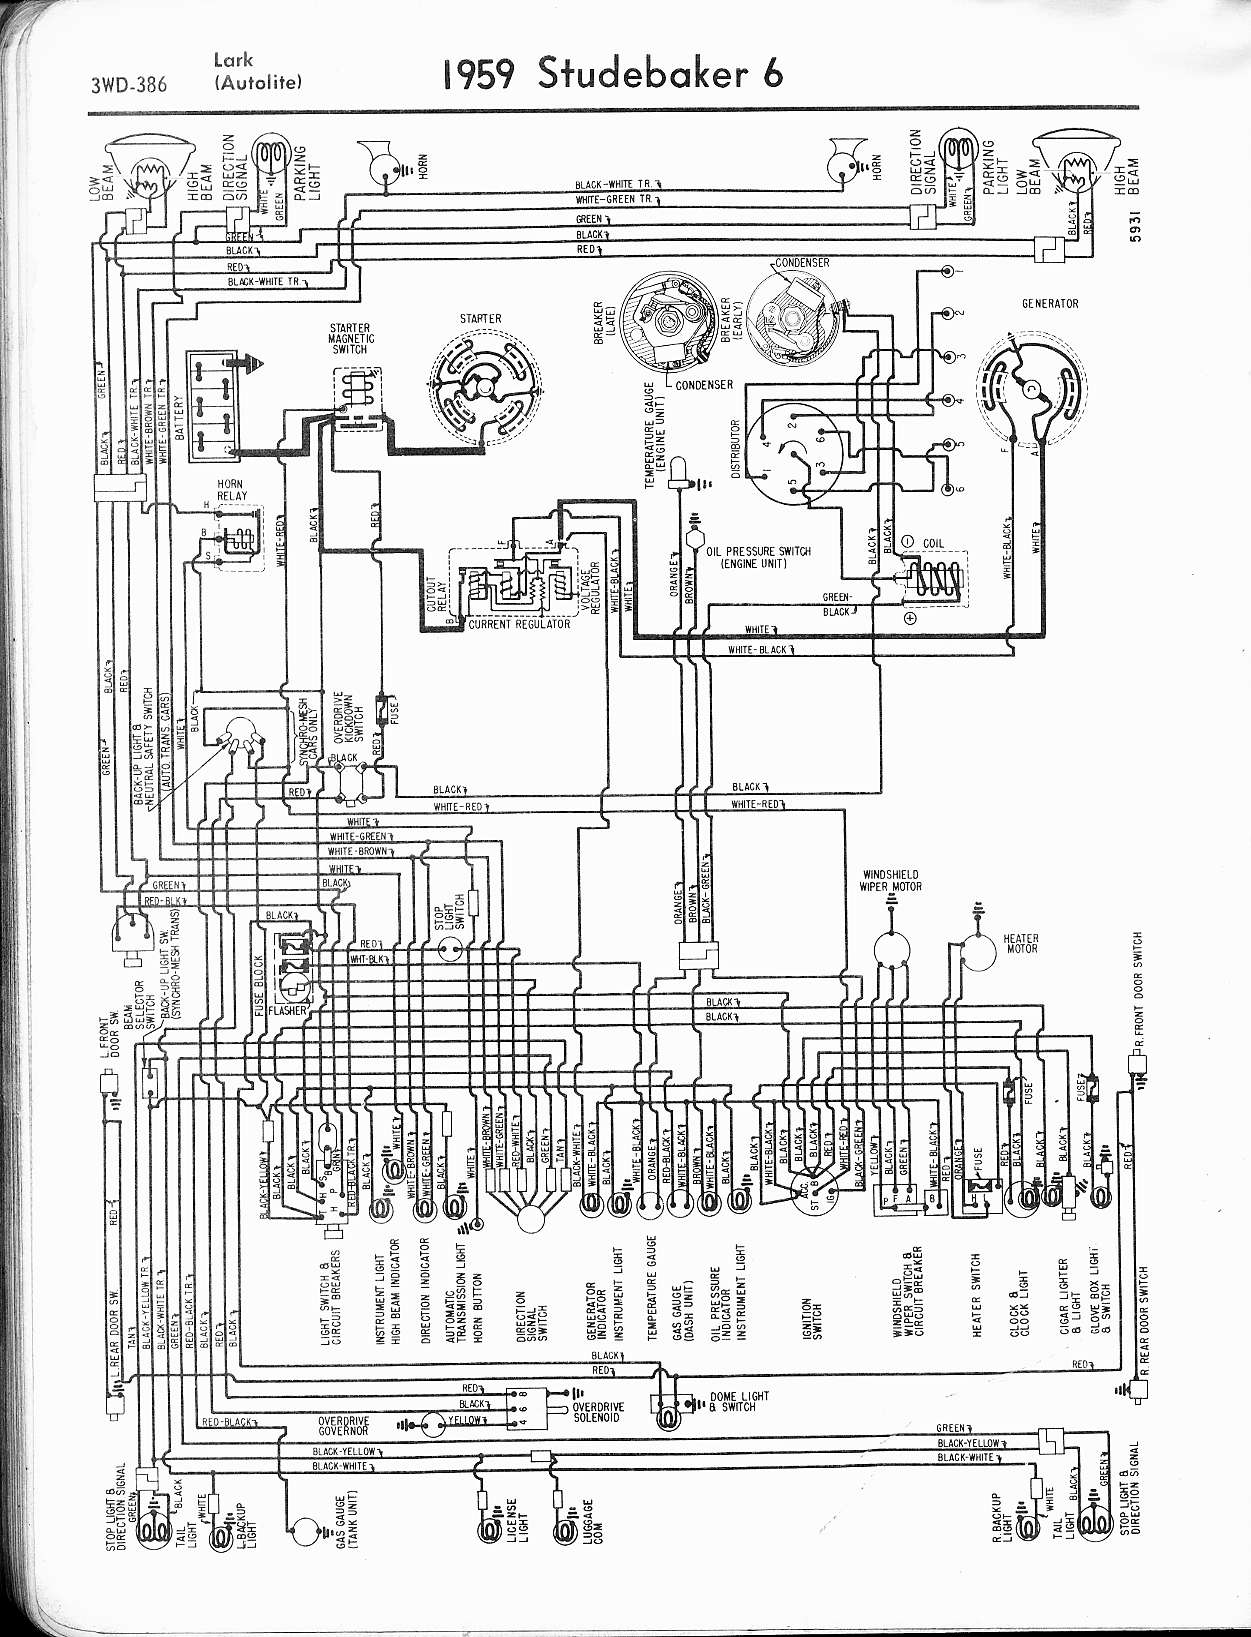 studebaker wiring diagrams the old car manual project 1959 6 cyl lark (autolite)